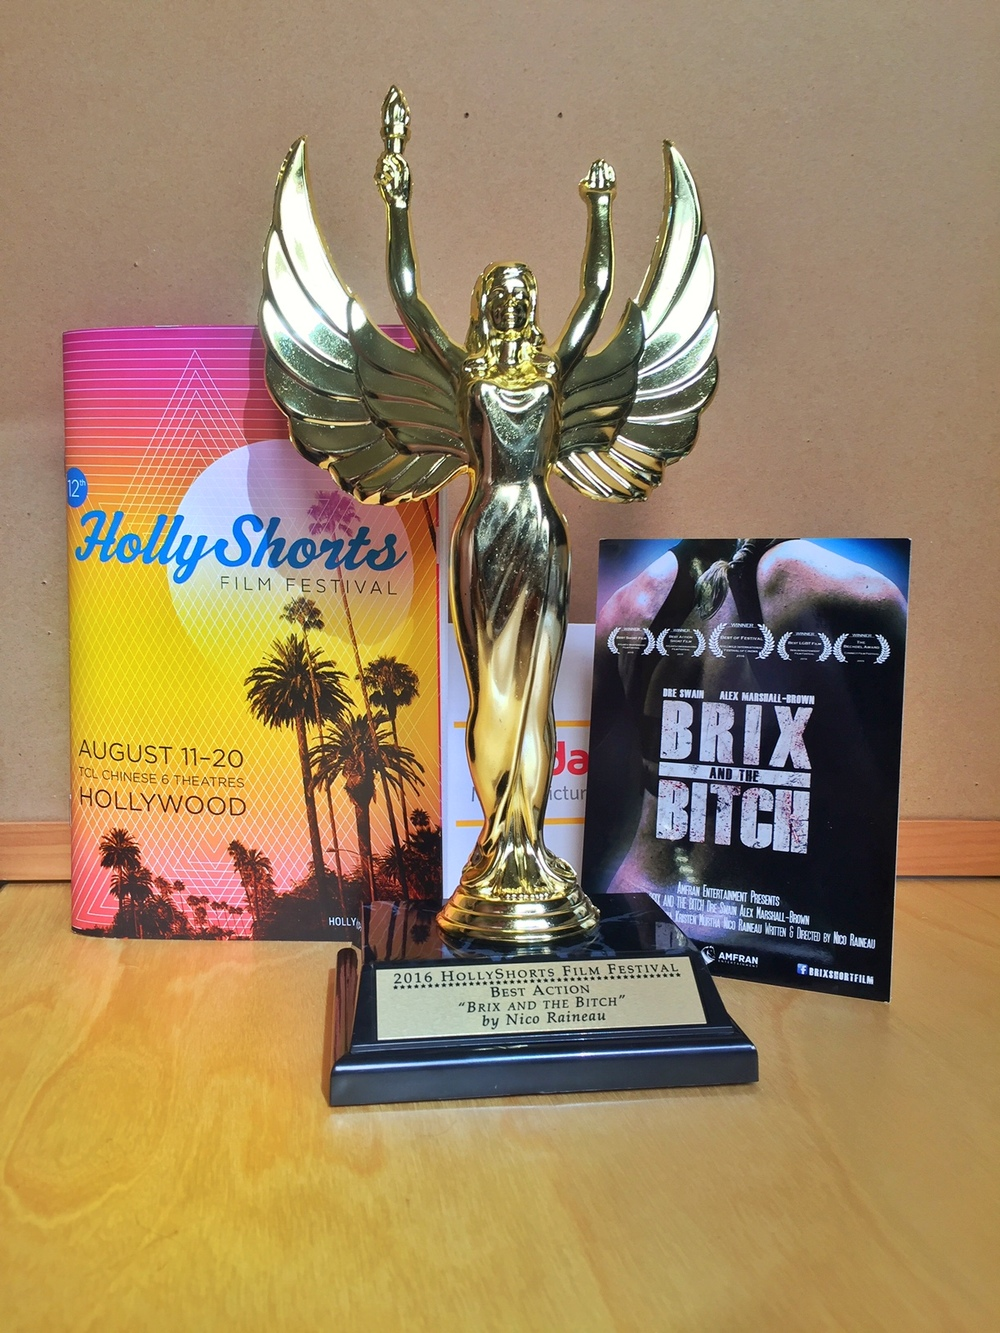 The Brix & the Bitch team is honored to win the award for Best Action Short at Hollyshorts Film Festival!